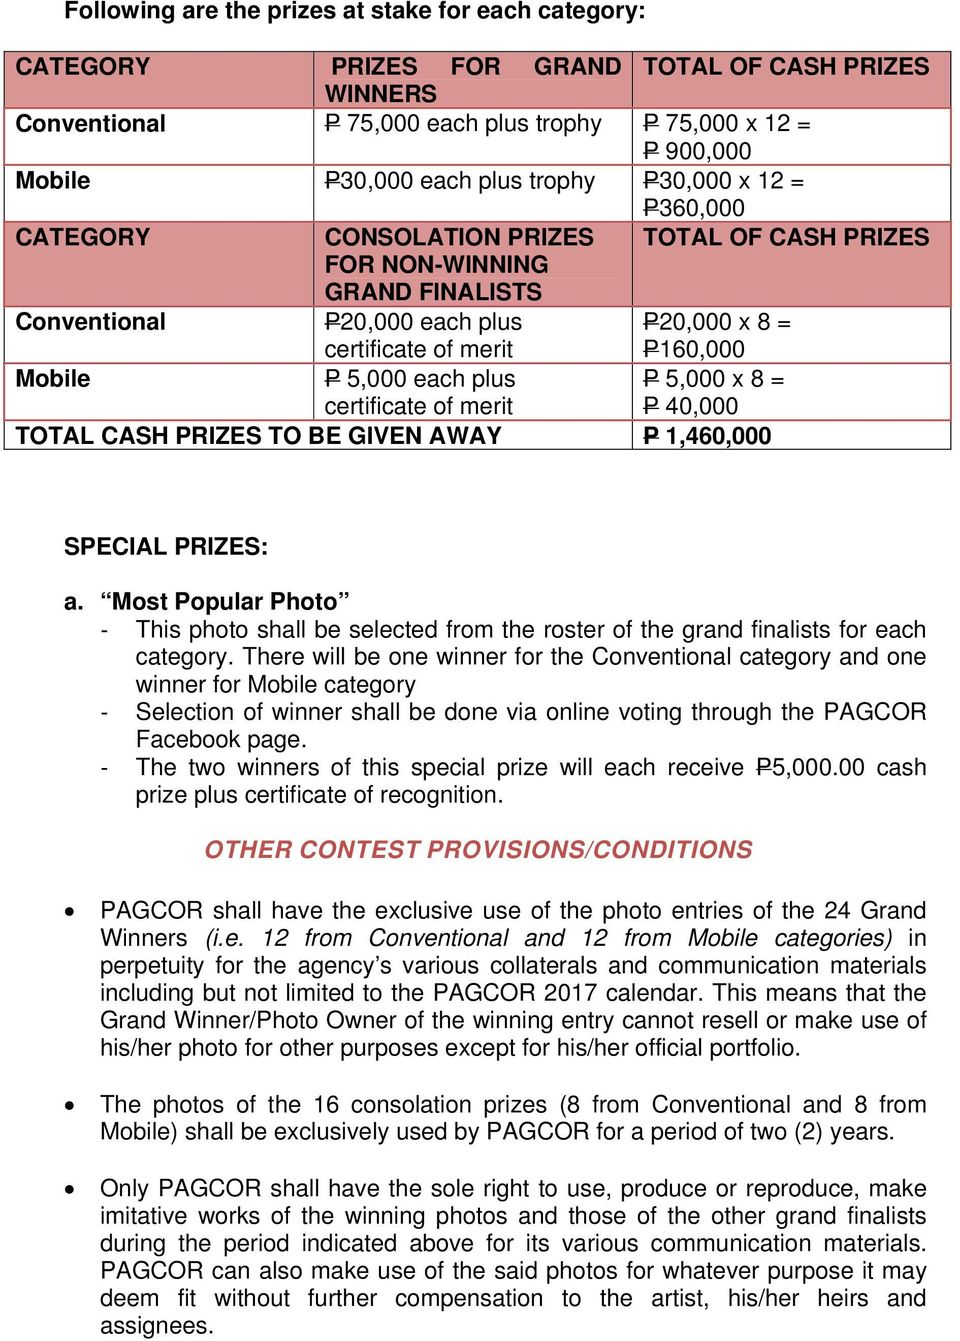 5,000 each plus certificate of merit P 5,000 x 8 = P 40,000 TOTAL CASH PRIZES TO BE GIVEN AWAY P 1,460,000 SPECIAL PRIZES: a.